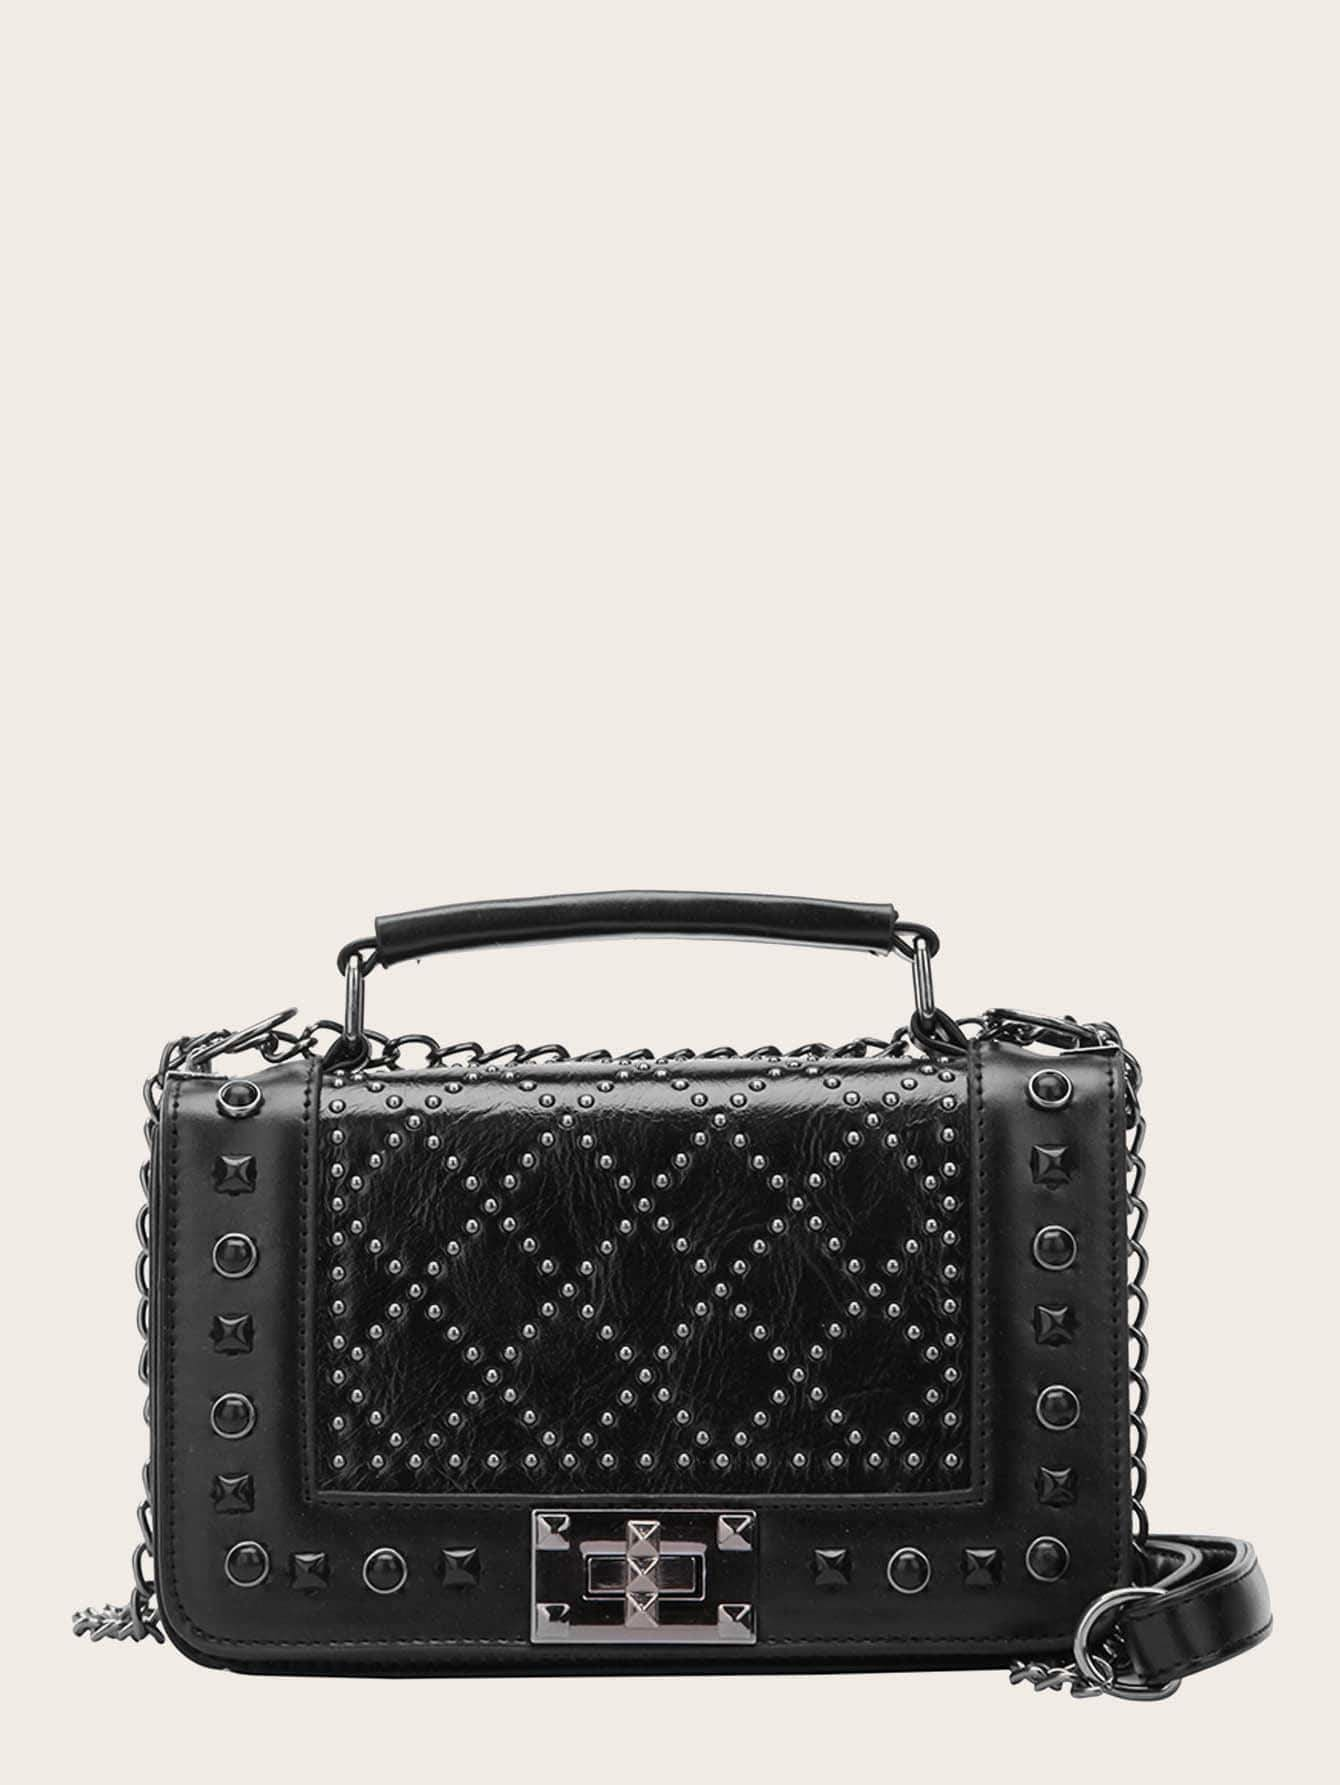 Studded Decor Satchel Chain Bag